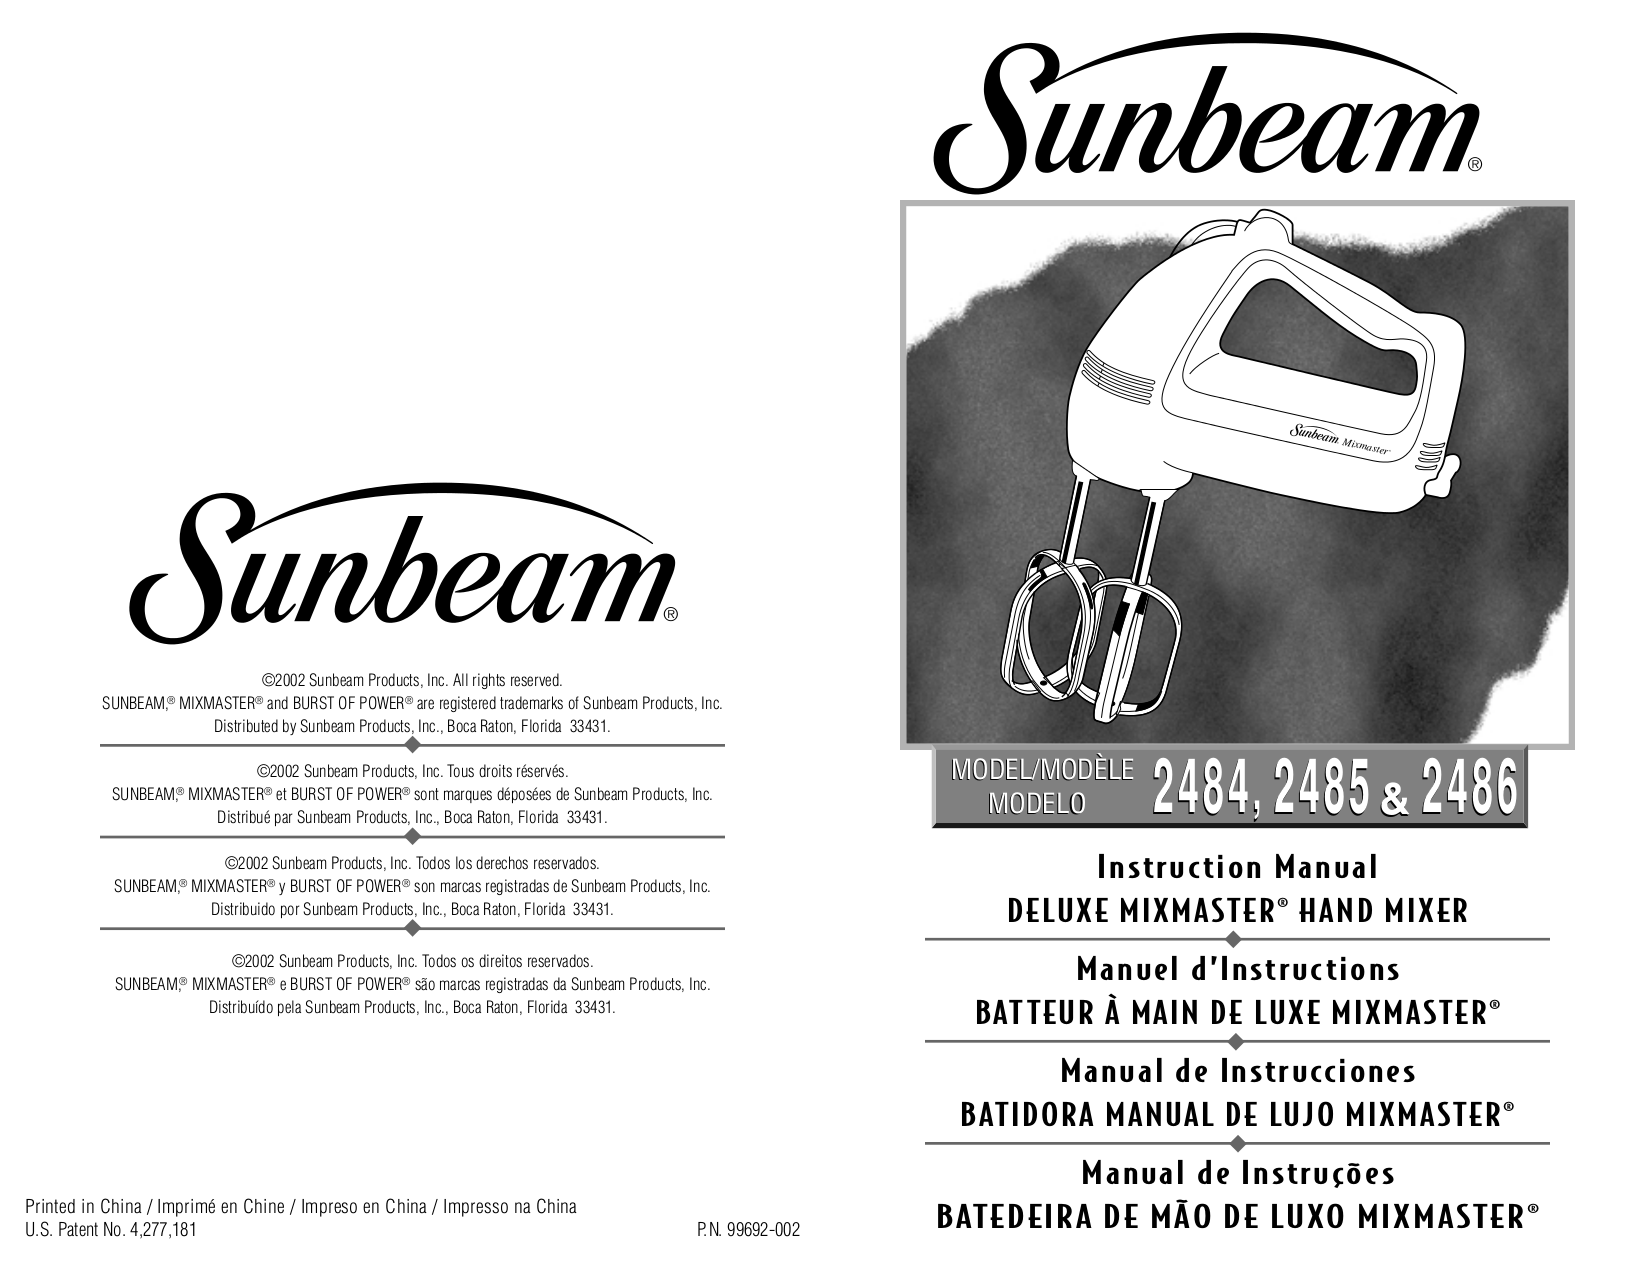 pdf for Sunbeam Other 2486 Hand Mixer manual